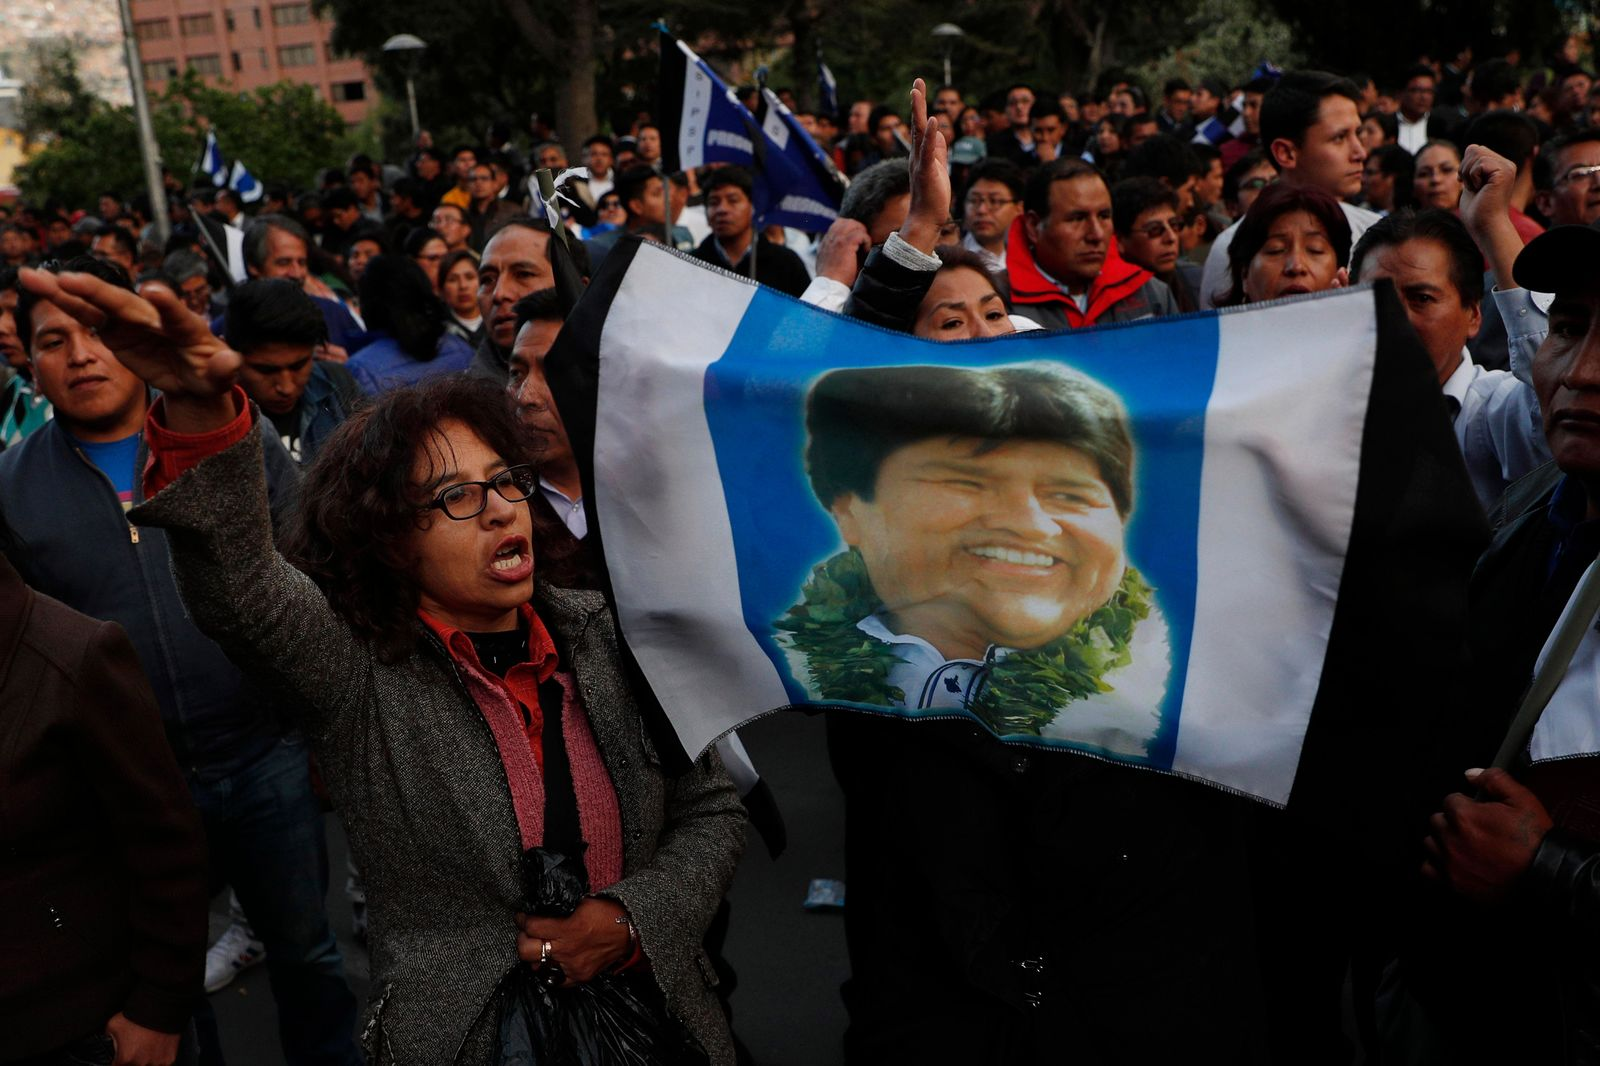 Supporters of Bolivian President Evo Morales, who is running for a fourth term, rally outside the Supreme Electoral Court where election ballots are being counted in La Paz, Bolivia, Monday, Oct. 21, 2019.{ } (AP Photo/Juan Karita)